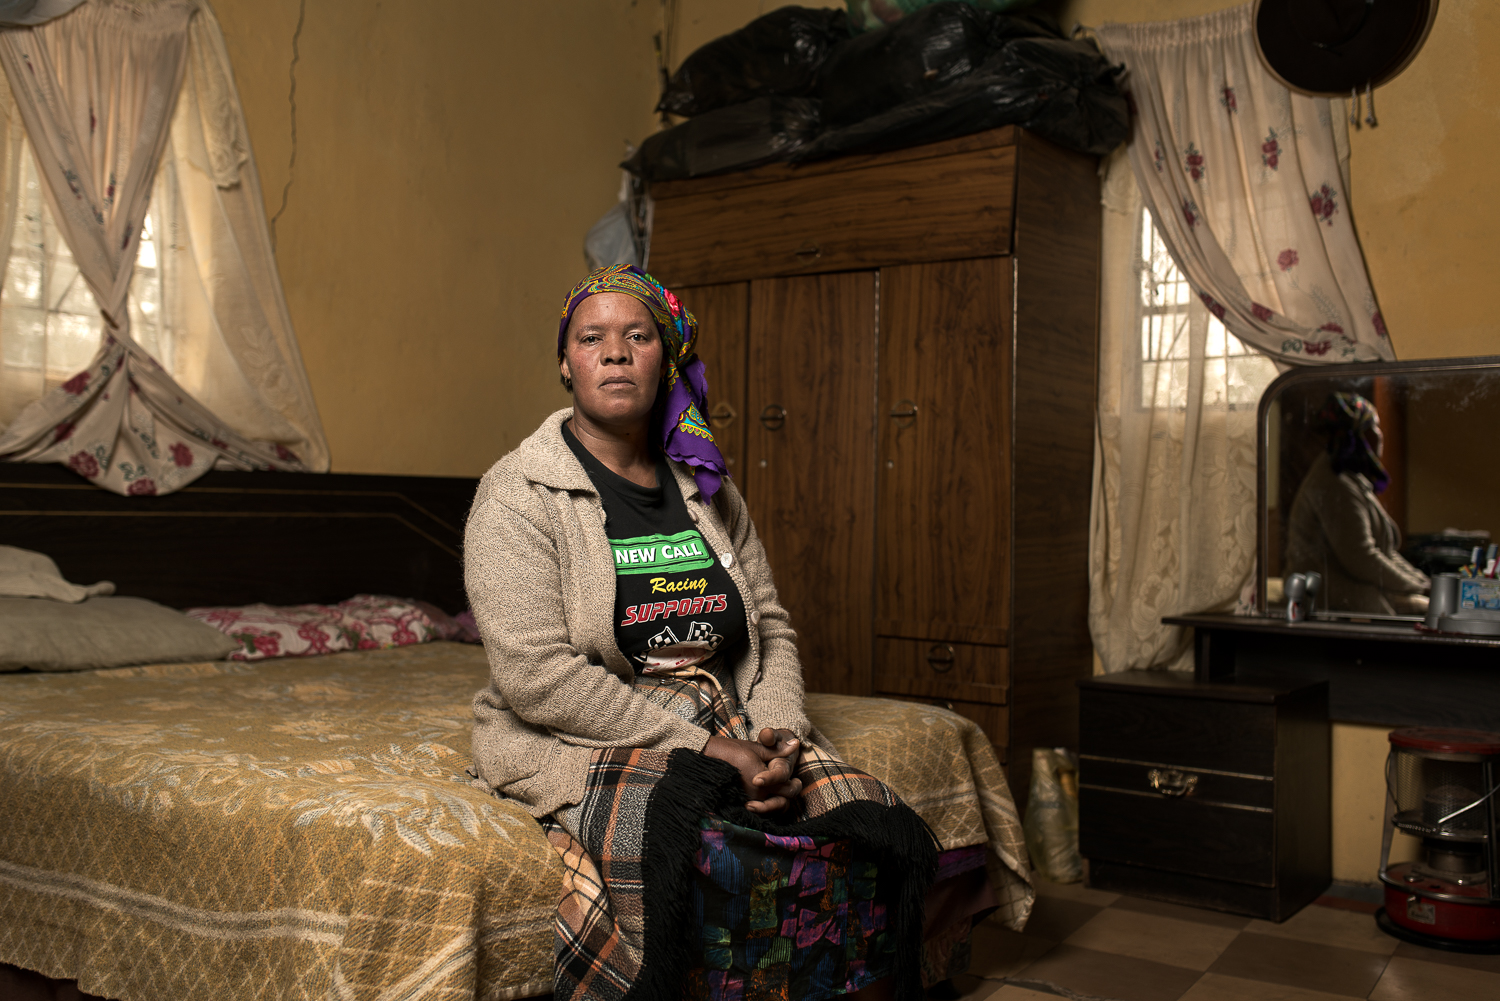 "Makeneude Agnus Litabe  is the widow of Michael Litabe who passed away in 2014 at the age of 60 years. She is 49 and lives in Motemekoane near Maseru in Lesotho. Her late husband worked on the mines for 29 years and received R38 000 when he was diagnosed with silicosis. She now has to survive by growing vegetables and farming cattle on her own. Her eldest daughter works as a domestic worker in Pretoria and sends home R1 000 every 3 or 4 months. ""Before my husband died he lost a lot of weight and his skin became black. He was in a lot of pain. I feel that the mine must be liable."""